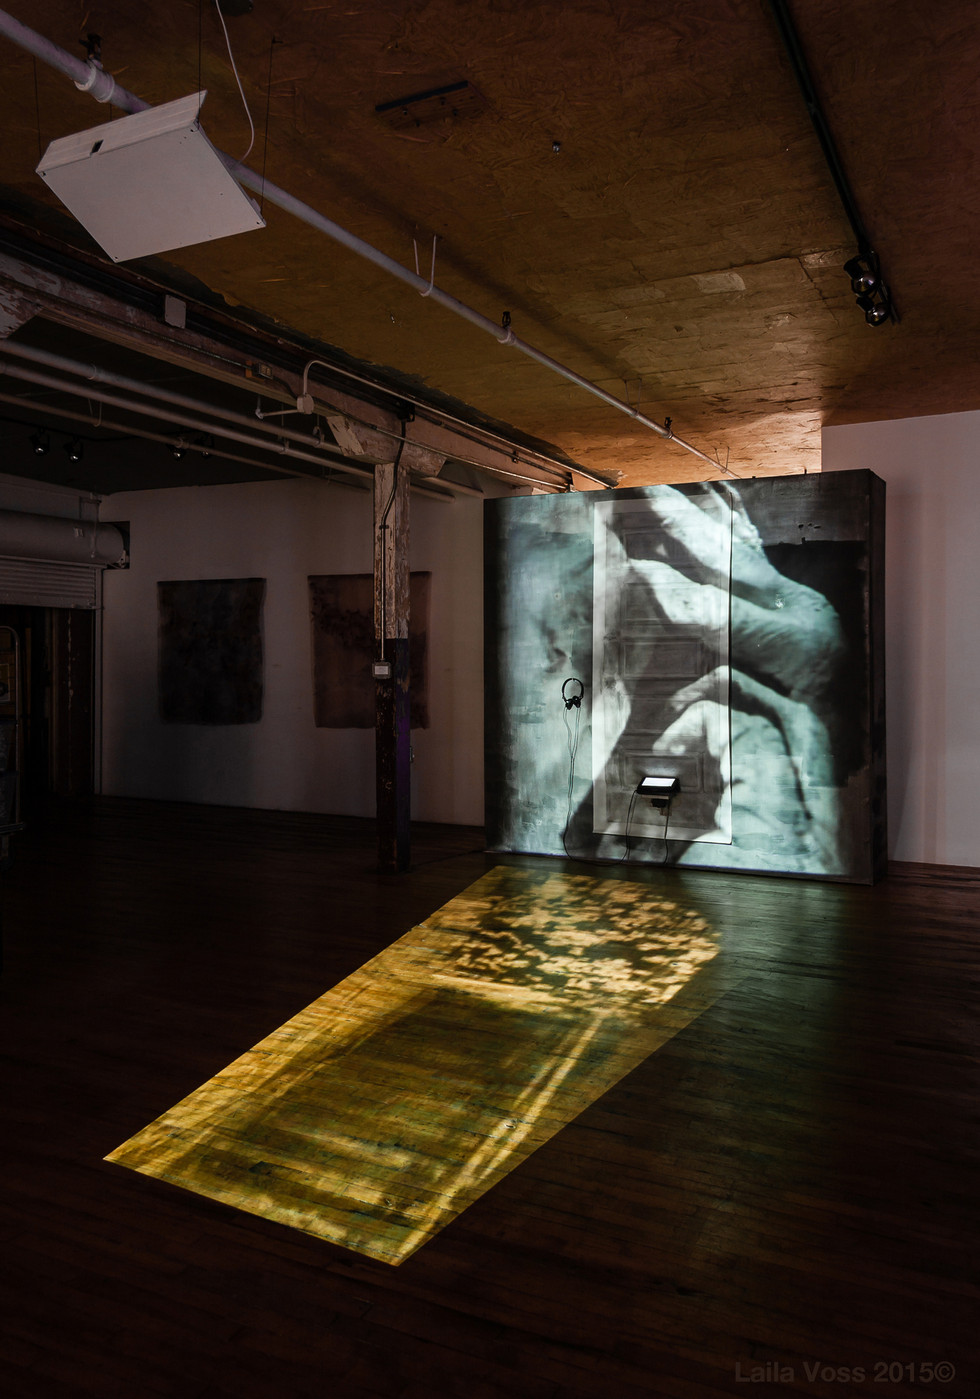 """Searching for that Sound Piece. 2010- 2015. Installation view with video projections of stairs and hands. Graphite rubbings on vellum and on the 8' x 8' wall, soundscape (T:00:11:34), DVD player, earphones, 2 projectors, two videos. Overall dimensions app: 8'20"""" x 8'4"""" x 23'.  Photo credit: Jerry Mann."""